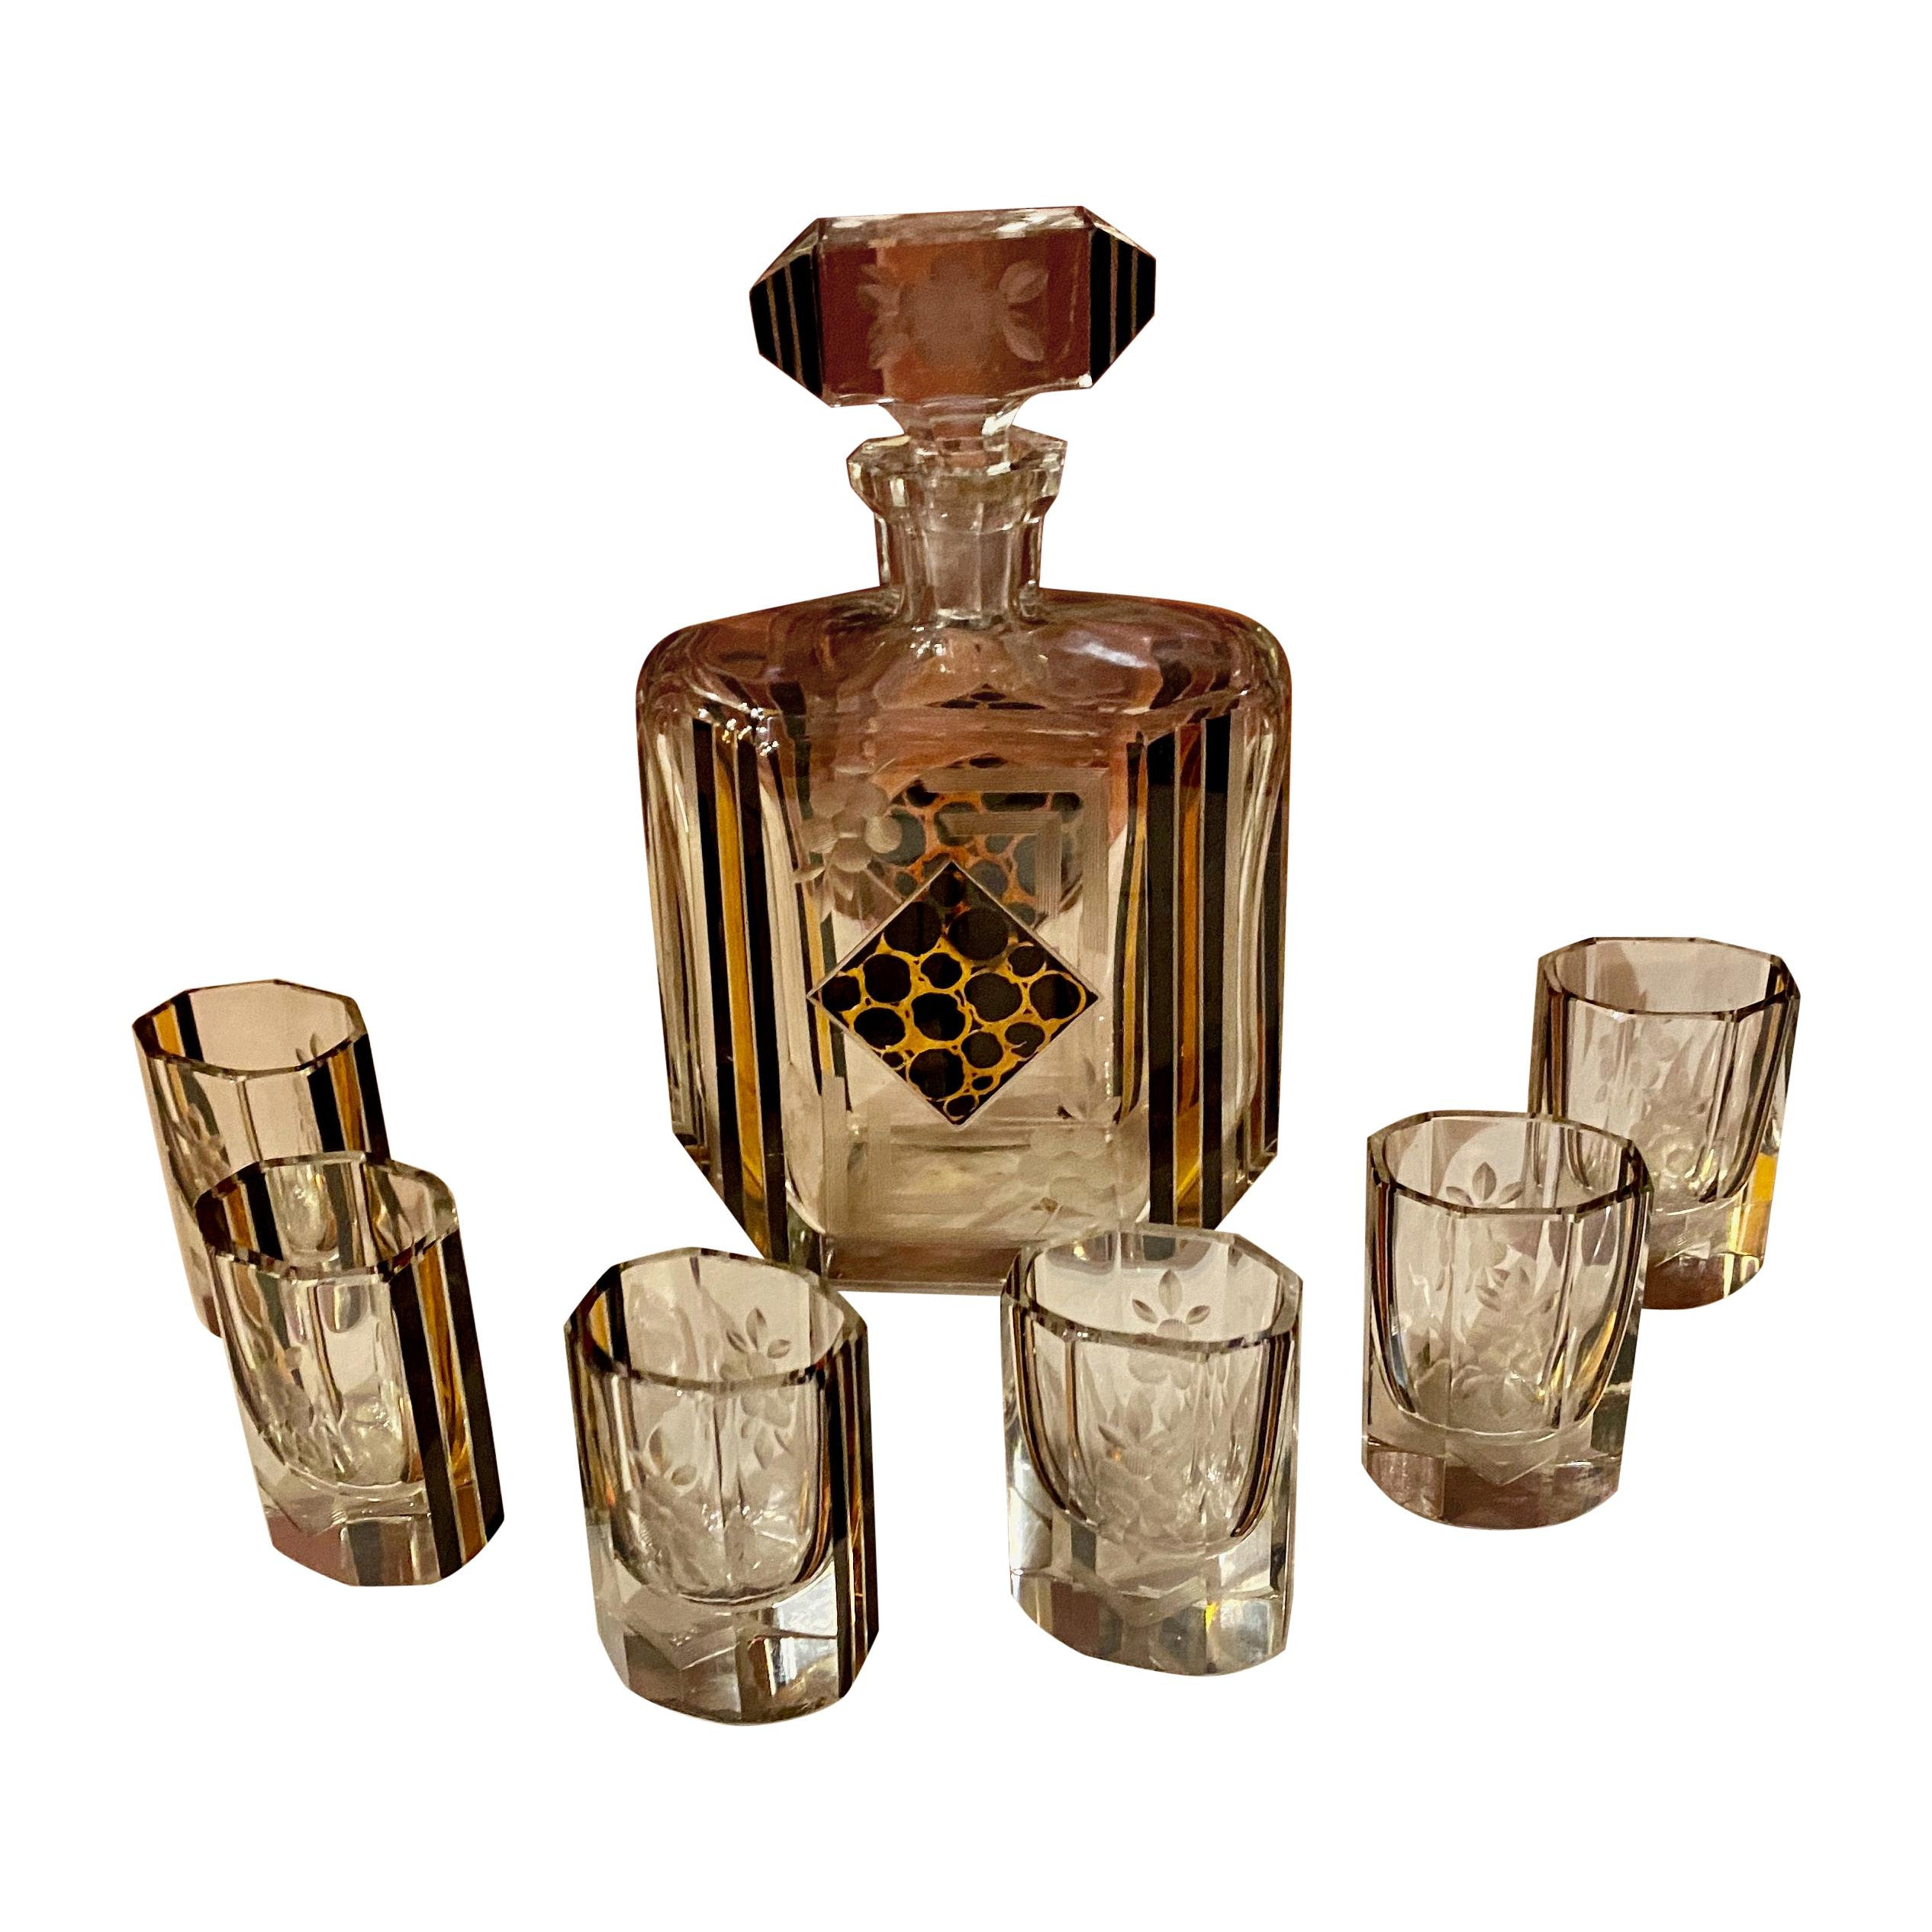 Art Deco Czech Decanter Glasses with Leopard Gold and Black Designs